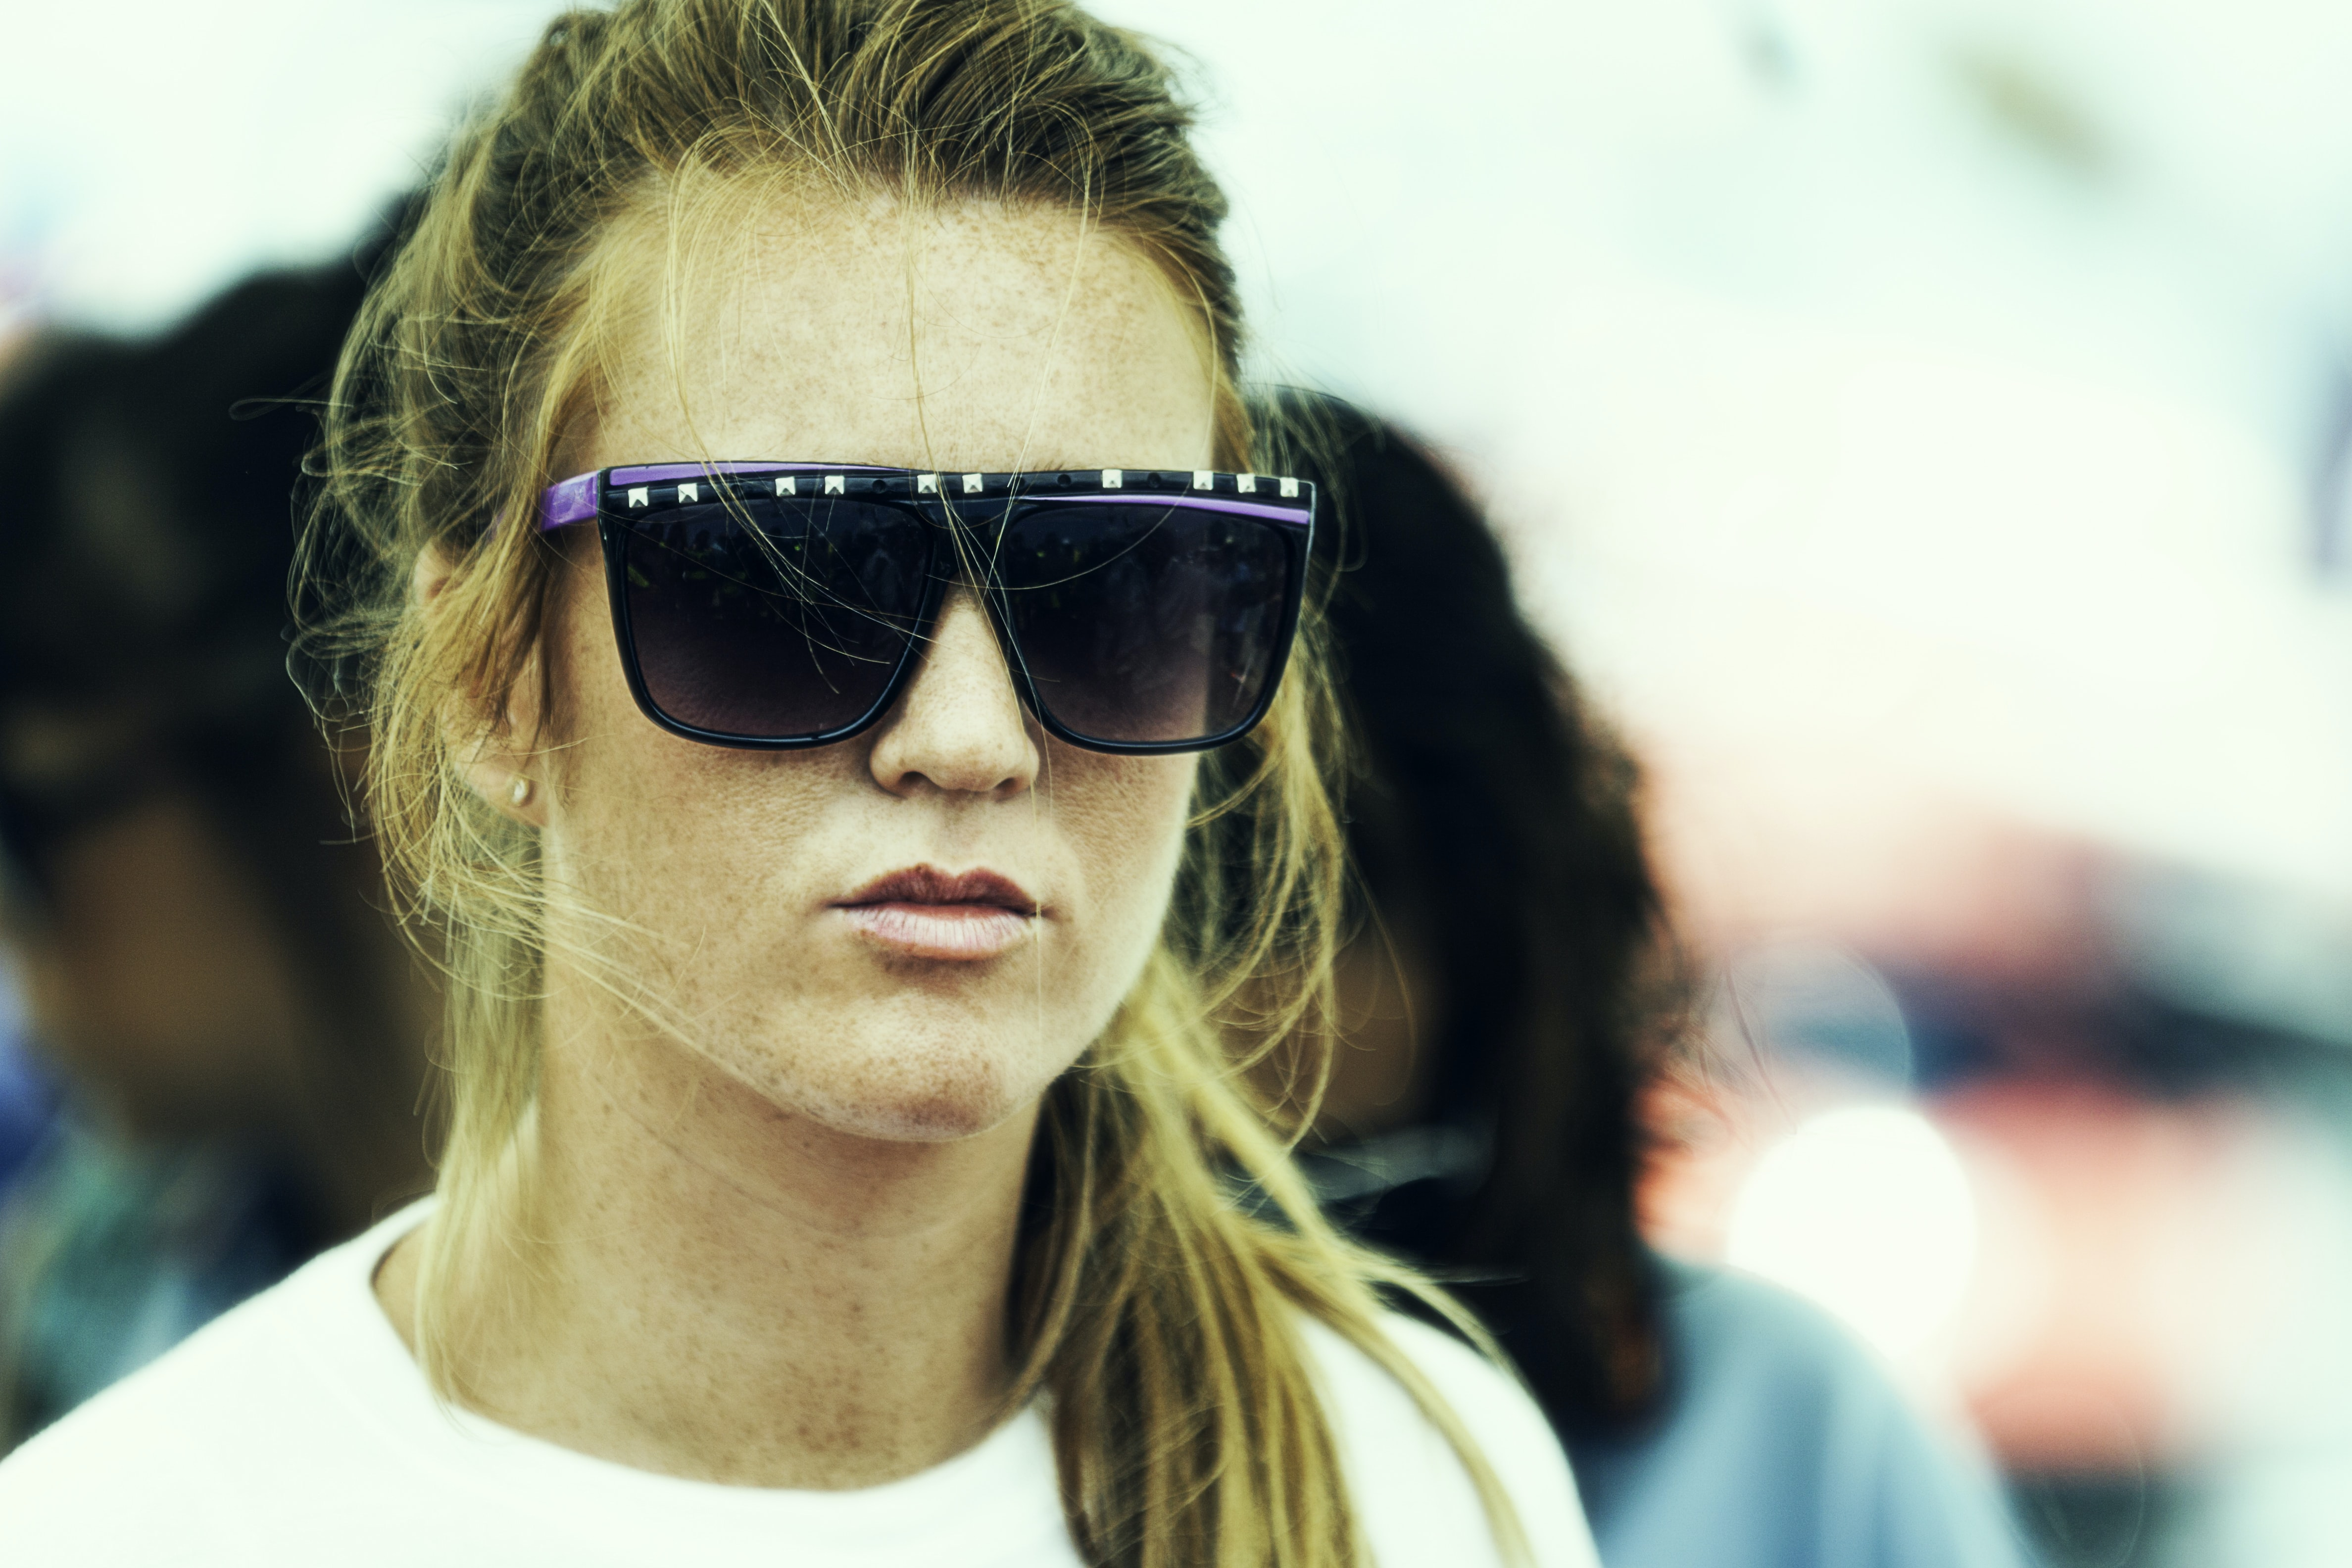 A woman with a ponytail wears large sunglasses against a blurry background